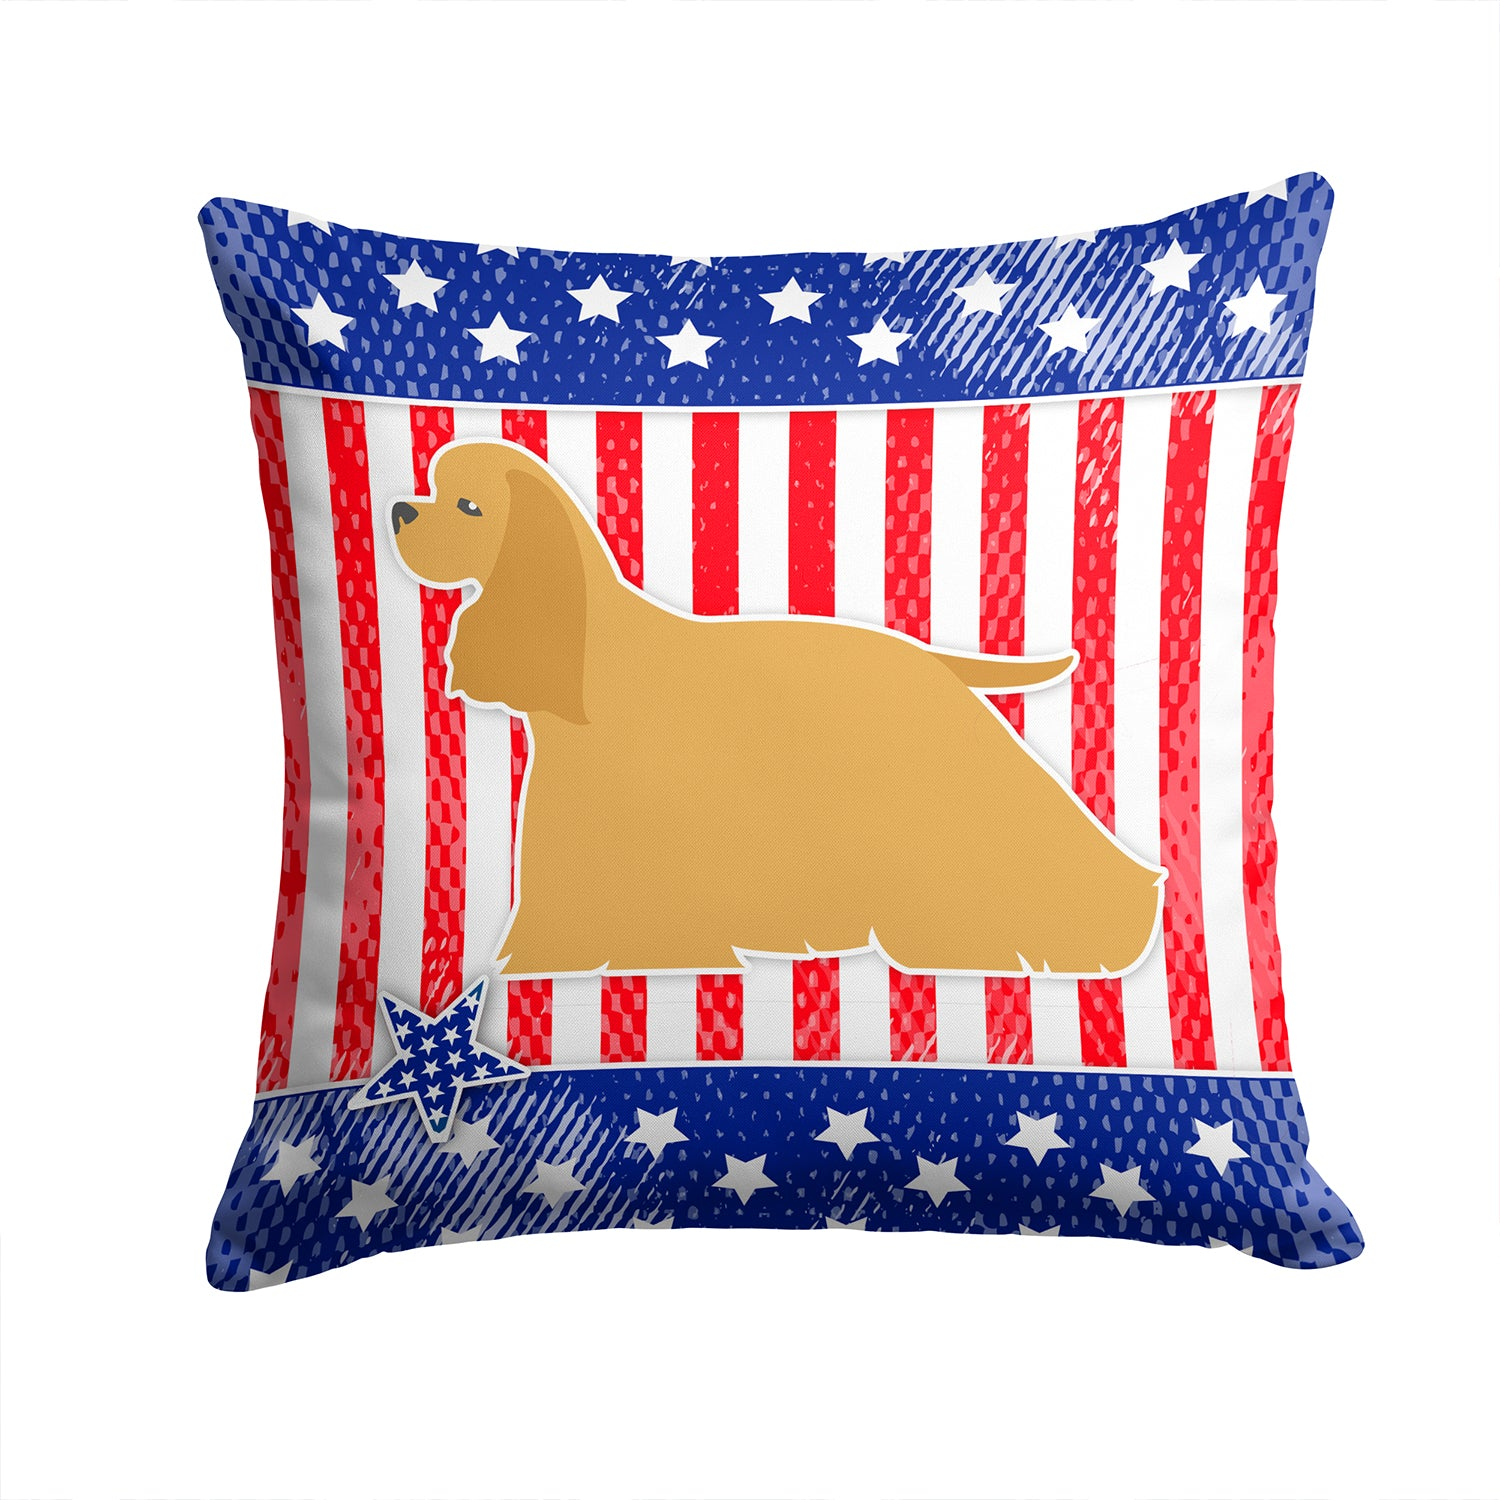 USA Patriotic Cocker Spaniel Fabric Decorative Pillow BB3286PW1414 by Caroline's Treasures